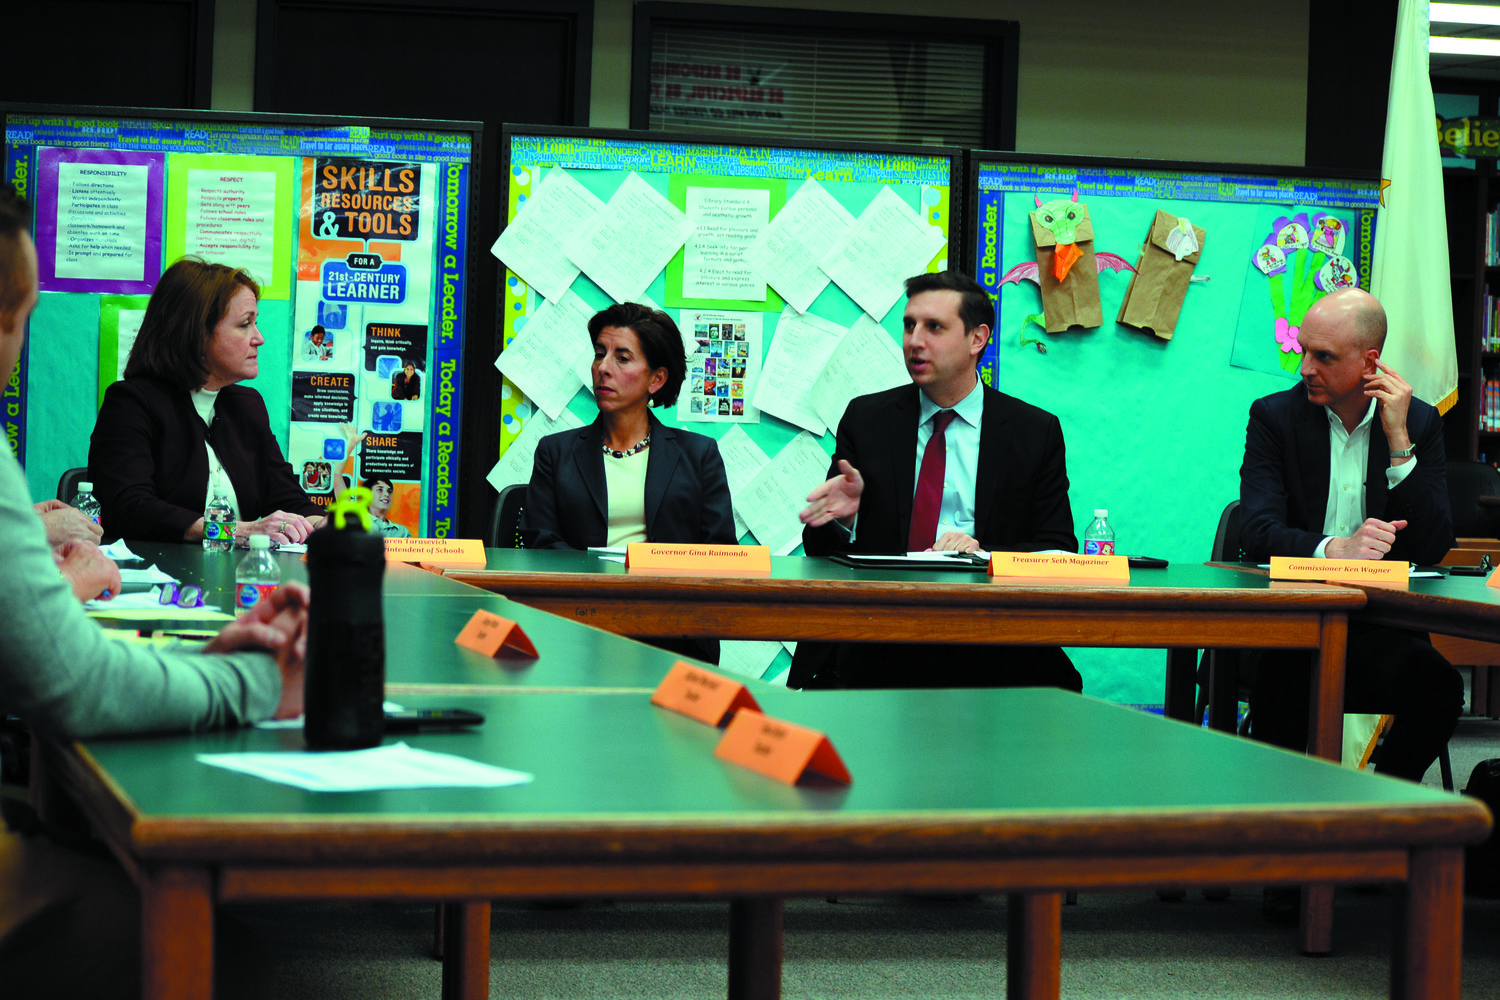 ROUND THE TABLE: From left to right, West Warwick superintendent Karen Tarasevich, Governor Gina Raimondo, state Treasurer Seth Magaziner and Department of Education Commissioner Ken Wagner discuss the state of school buildings in West Warwick at John F. Deering Middle School on Monday, Nov. 27.